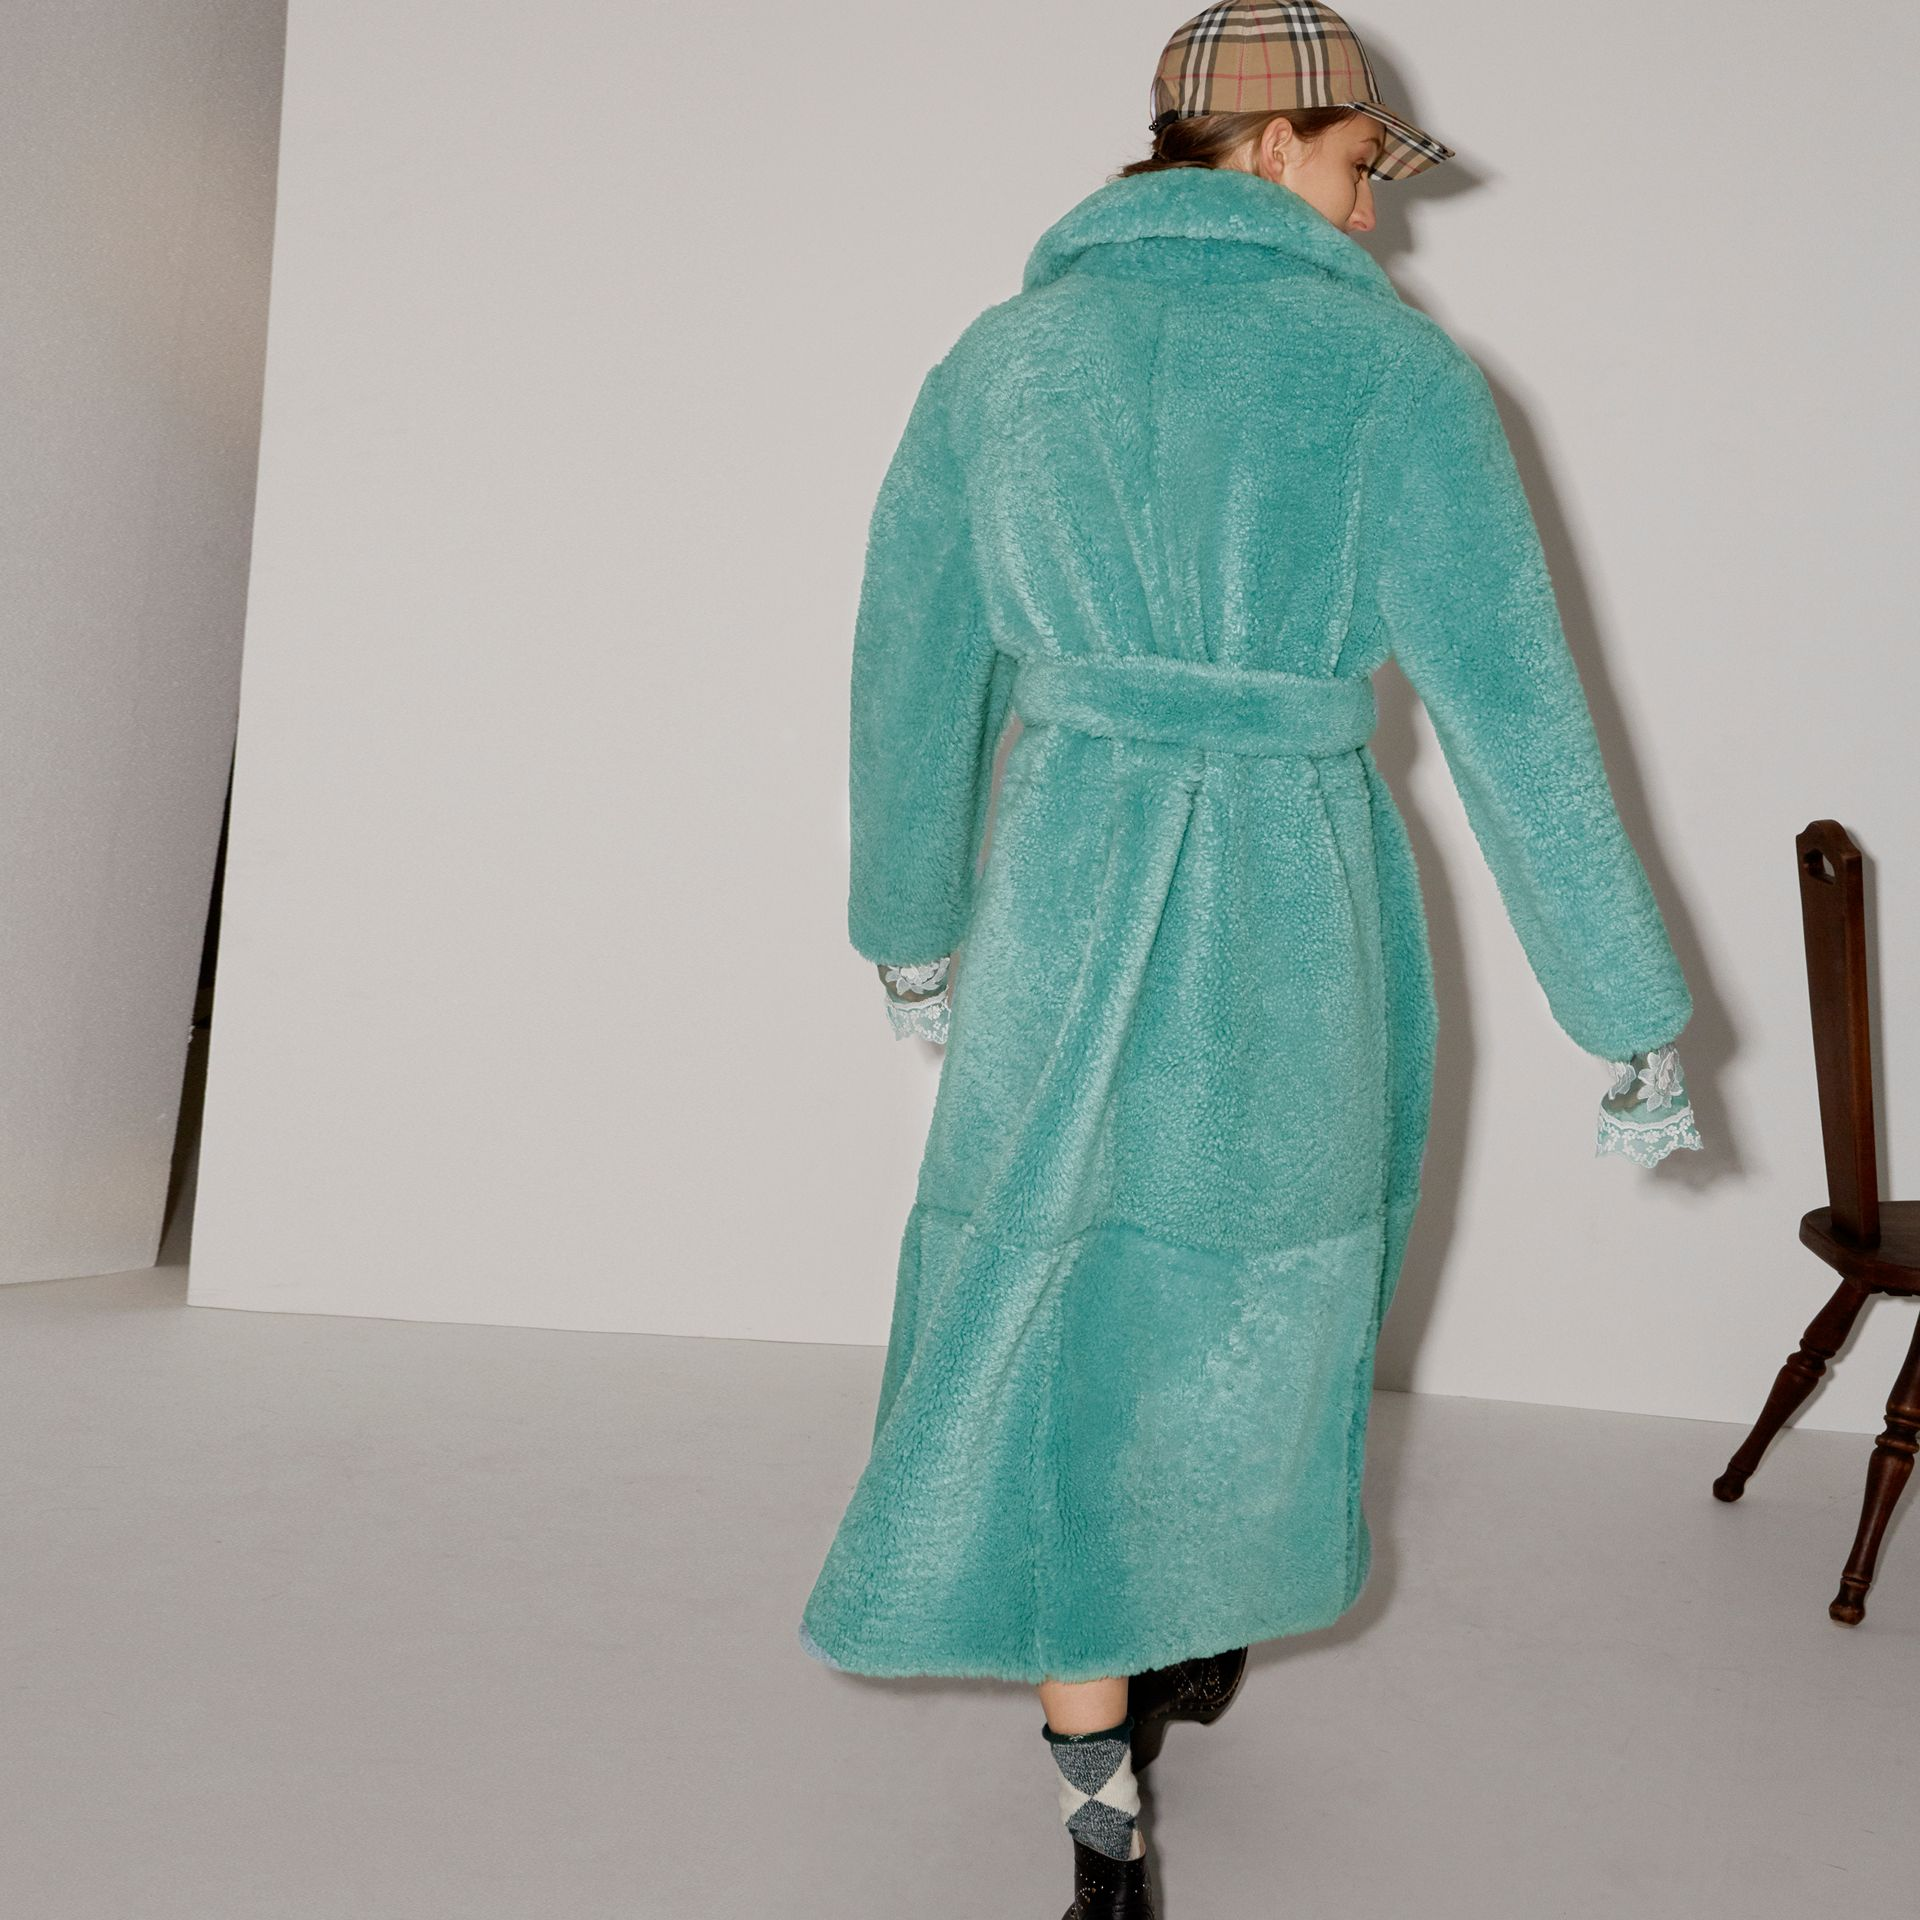 Shearling Oversized Coat in Turquoise - Women | Burberry - gallery image 2